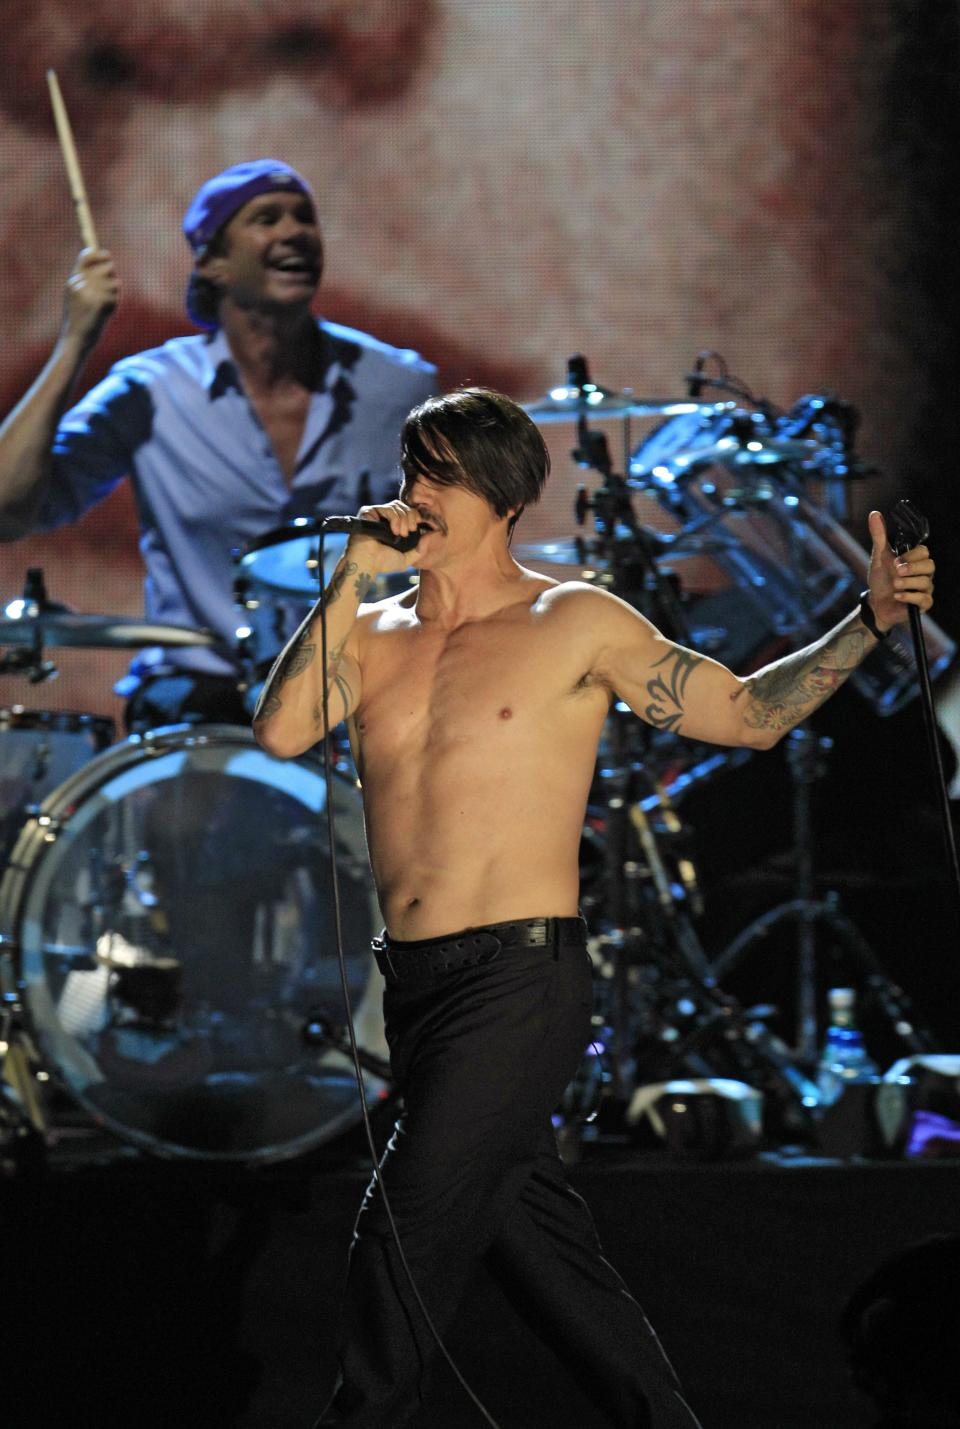 Red Hot Chili Peppers' Anthony Kiedis performs with drummer Chad Smith, background after induction into the Rock and Roll Hall of Fame Sunday, April 15, 2012, in Cleveland. (AP Photo/Tony Dejak)